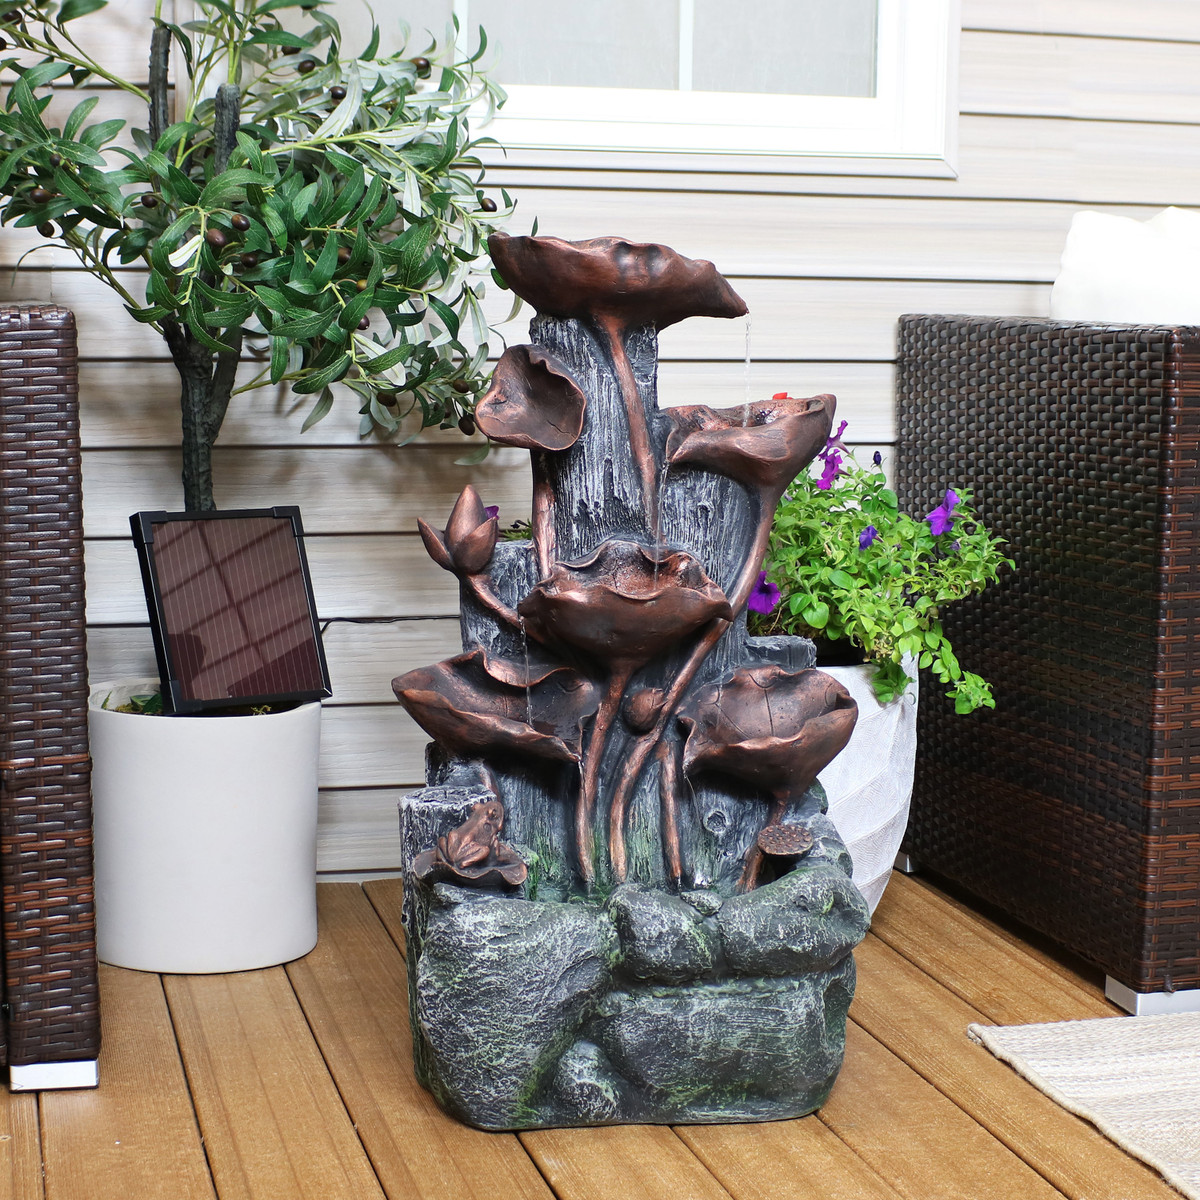 Cascading Water Fountains Outdoor.Sunnydaze Outdoor Tiered Driftwood And Flourishing Stems